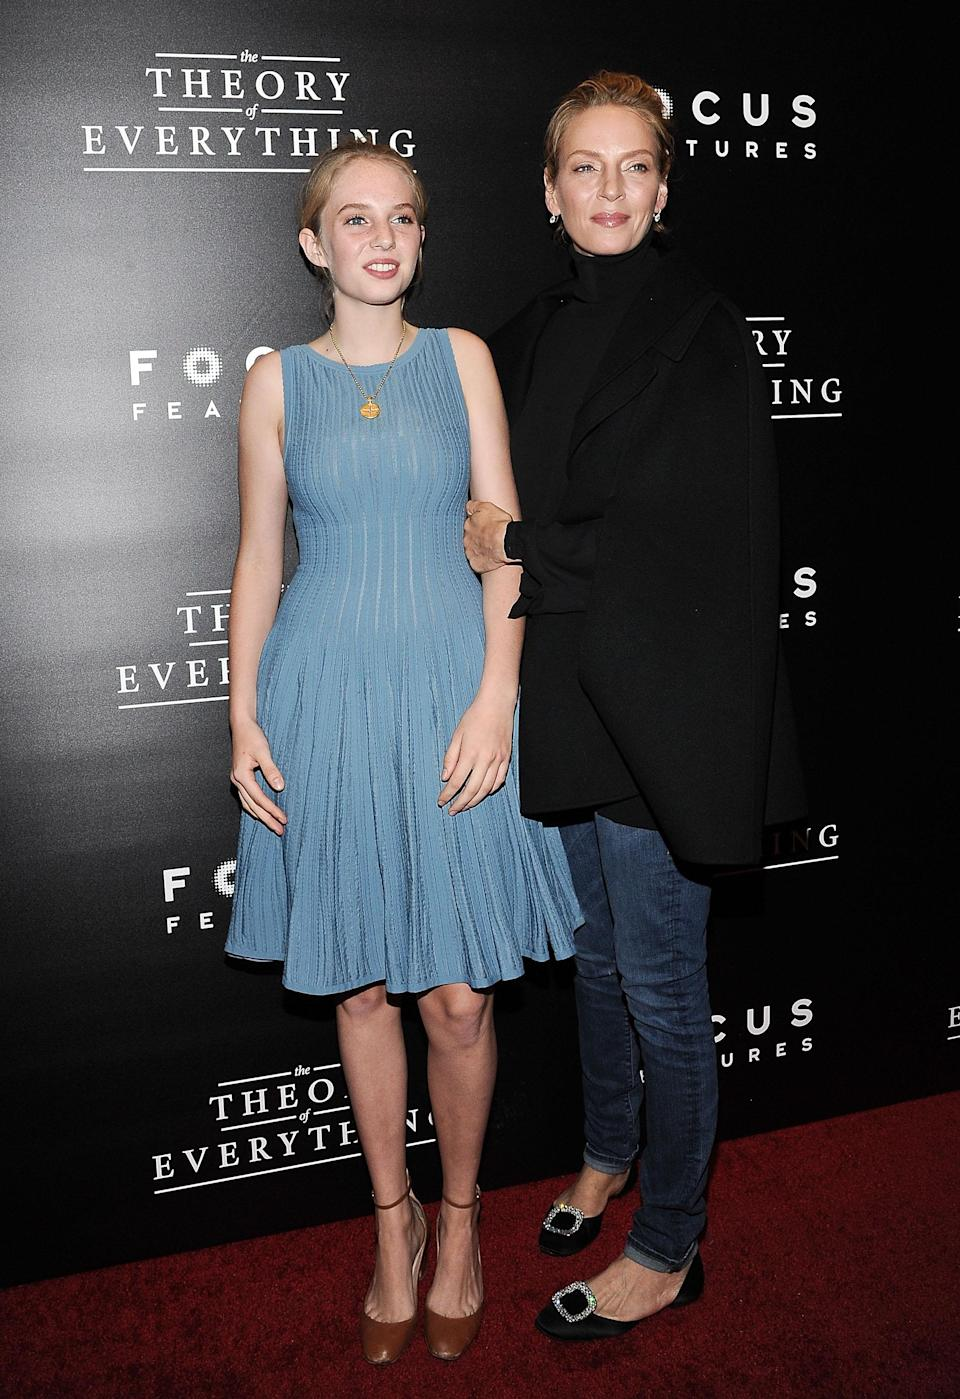 <p>Maya, aged 19, is already on her way to establishing herself as globally-known actress. The daughter of Ethan Hawke and Uma Thurman wowed in the 2017 TV adaptation of 'Little Women' and is set to star in the third season of Netflix's 'Stranger Things' hit show. <em>[Photo: Getty]</em> </p>